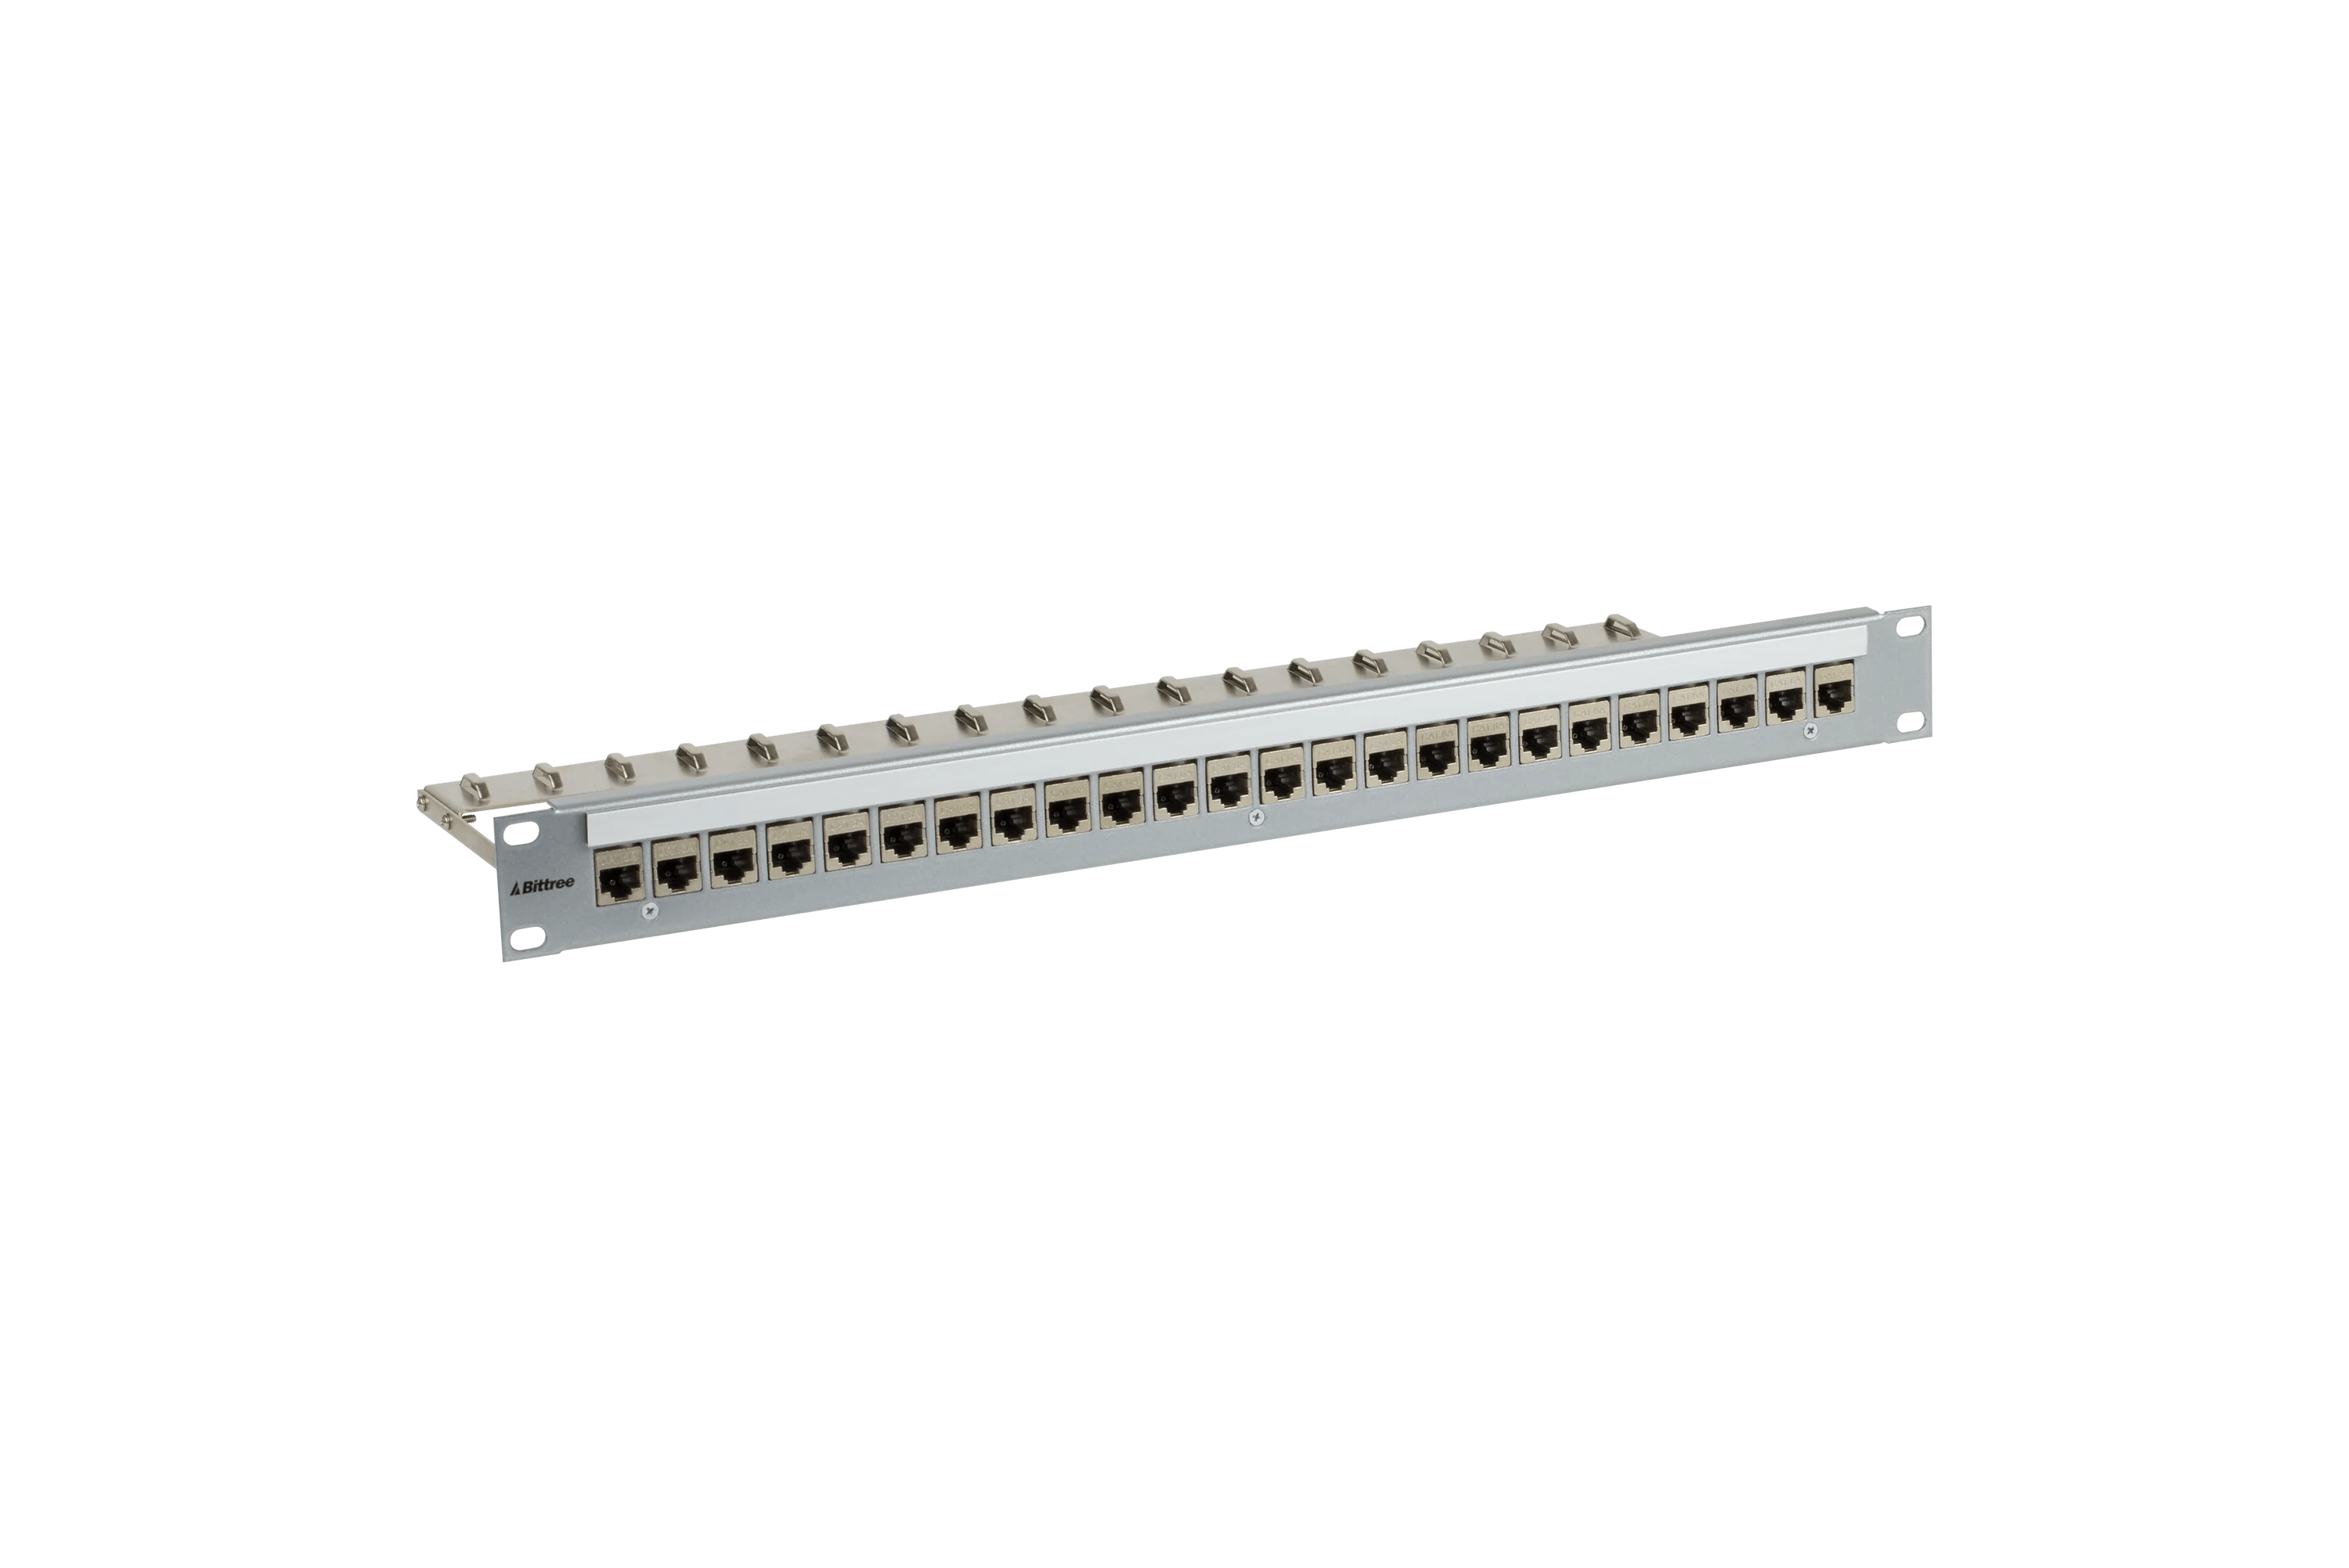 medium resolution of  flush mount modular keystone panel cat 6a 110 punchdown shielded 1x24